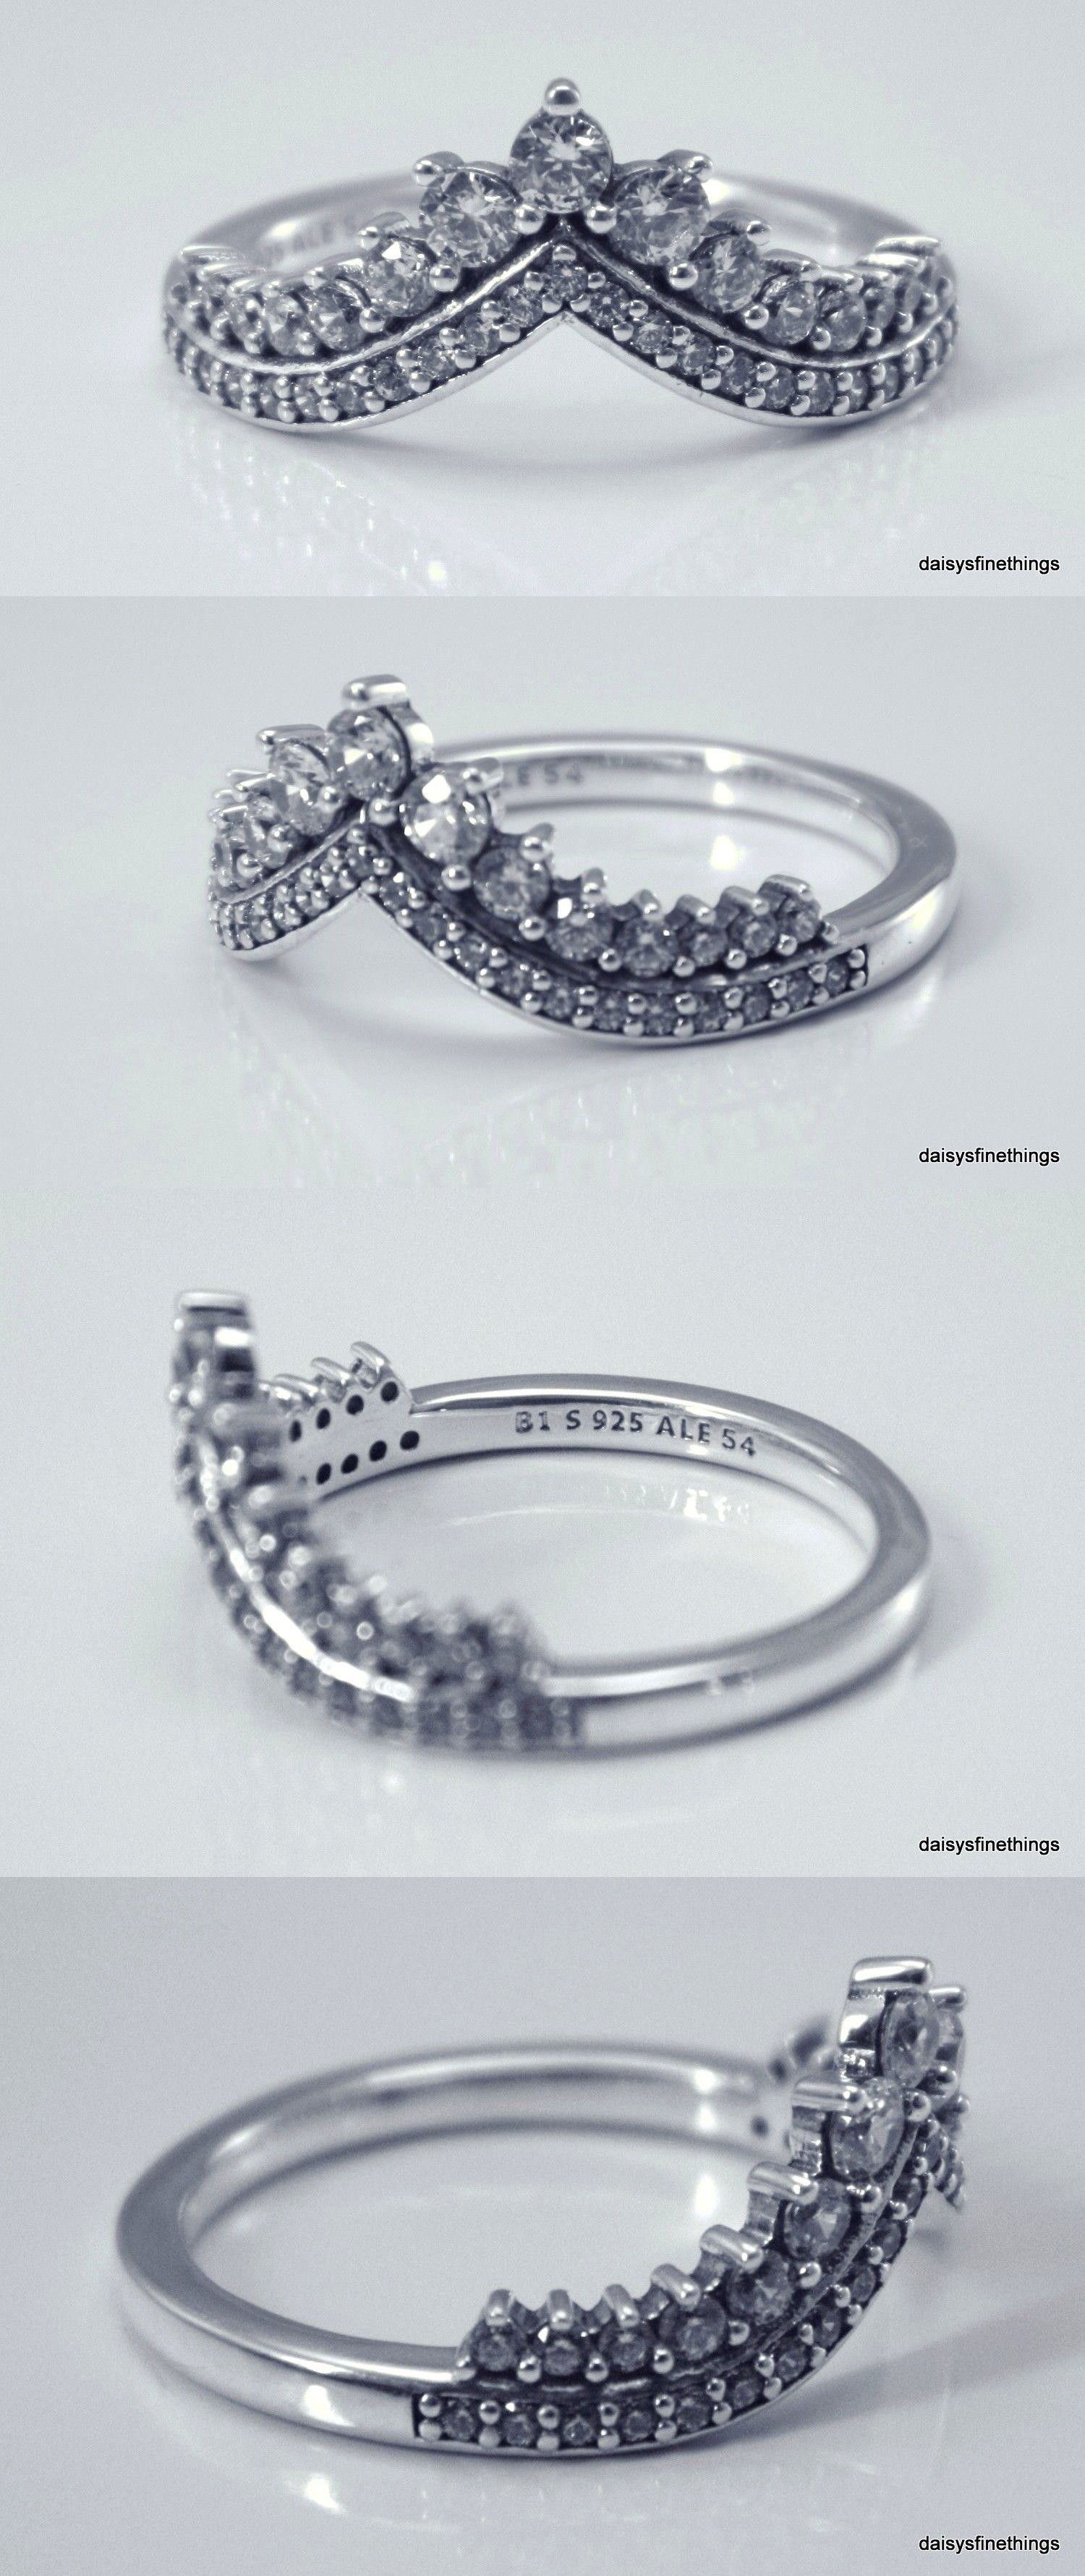 Other Fine Rings 177030: Authentic Pandora Silver Ring Princess Wish Throughout Most Up To Date Princess Wish Rings (View 6 of 25)